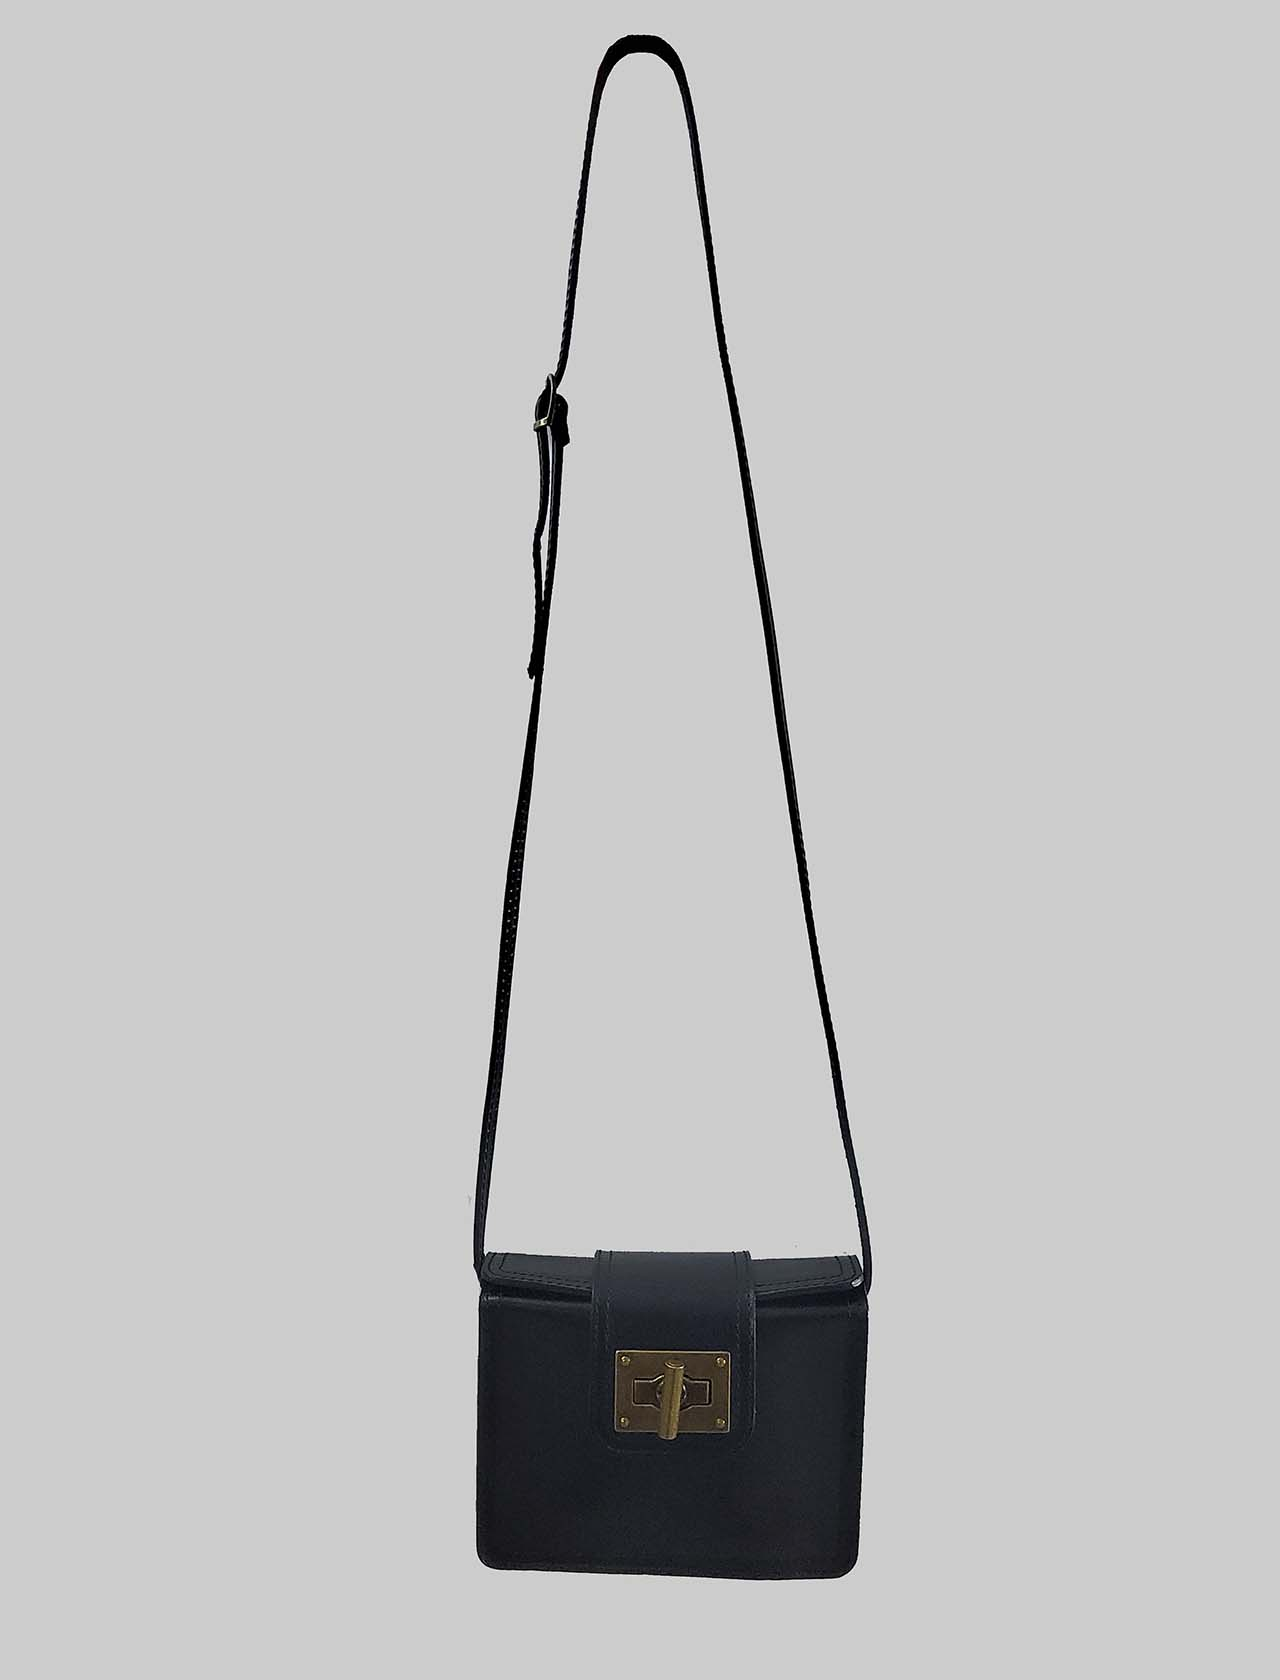 Women's Bags Clutch in Small Black Leather with Adjustable Leather Rigid Shoulder Strap Spatarella | Bags and backpacks | PE0204001